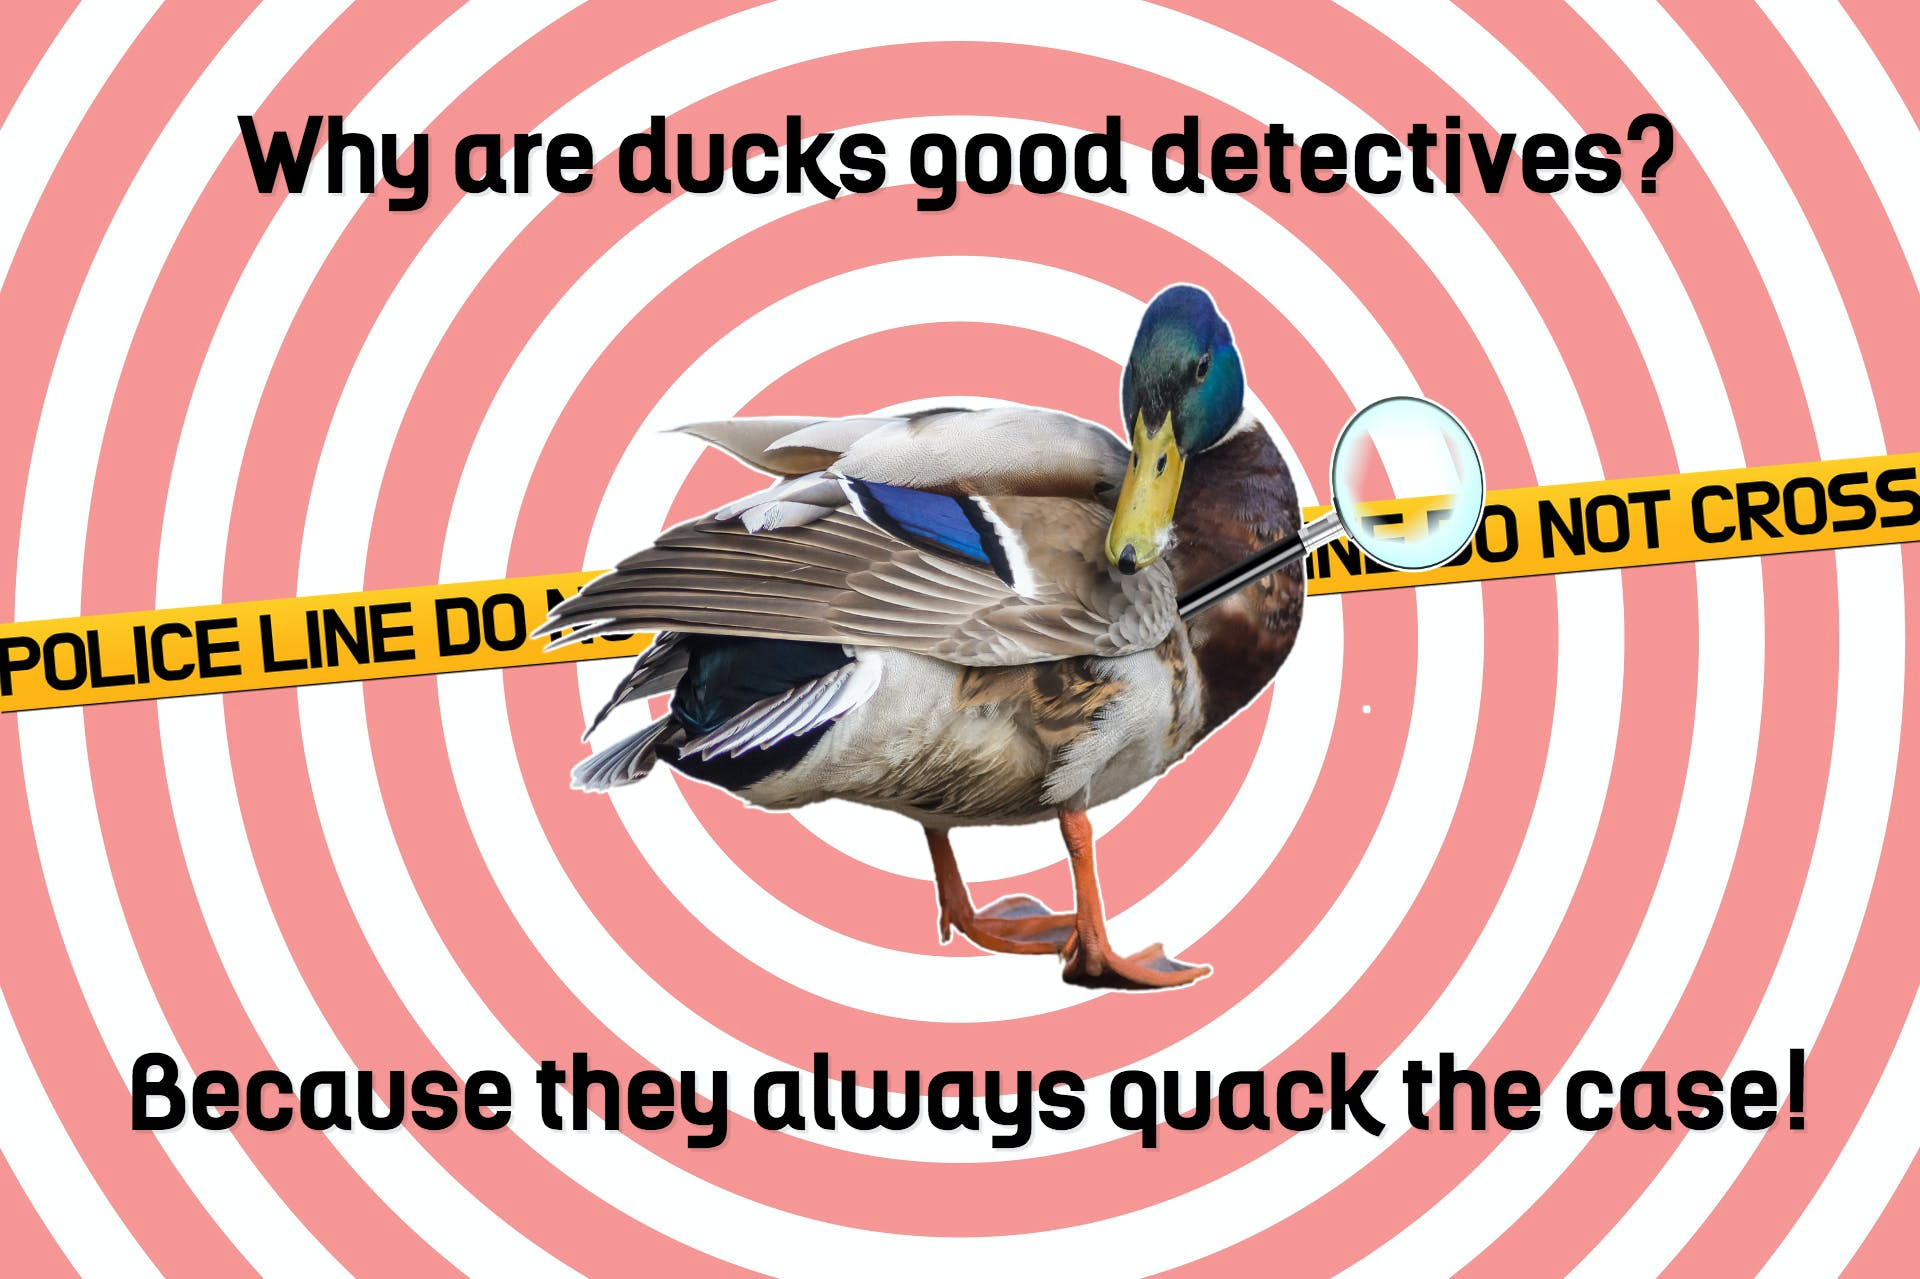 This is a cartoon of a duck with a magnifying glass